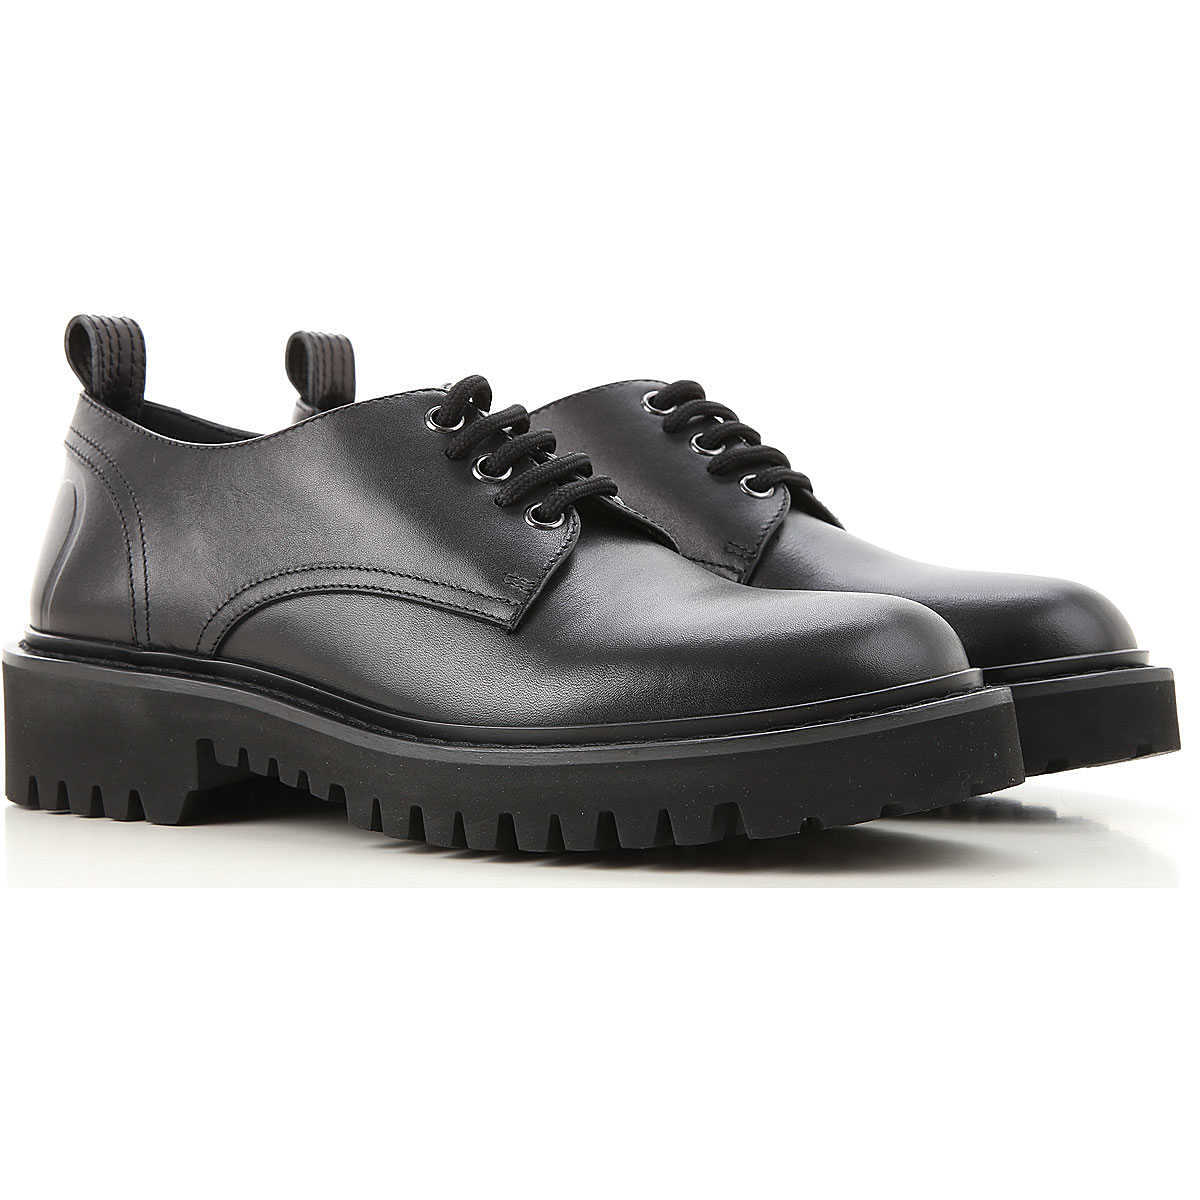 Valentino Garavani Lace Up Shoes for Men Oxfords 3 3.5 4.5 5.5 6 6.5 7.5 Derbies and Brogues UK - GOOFASH